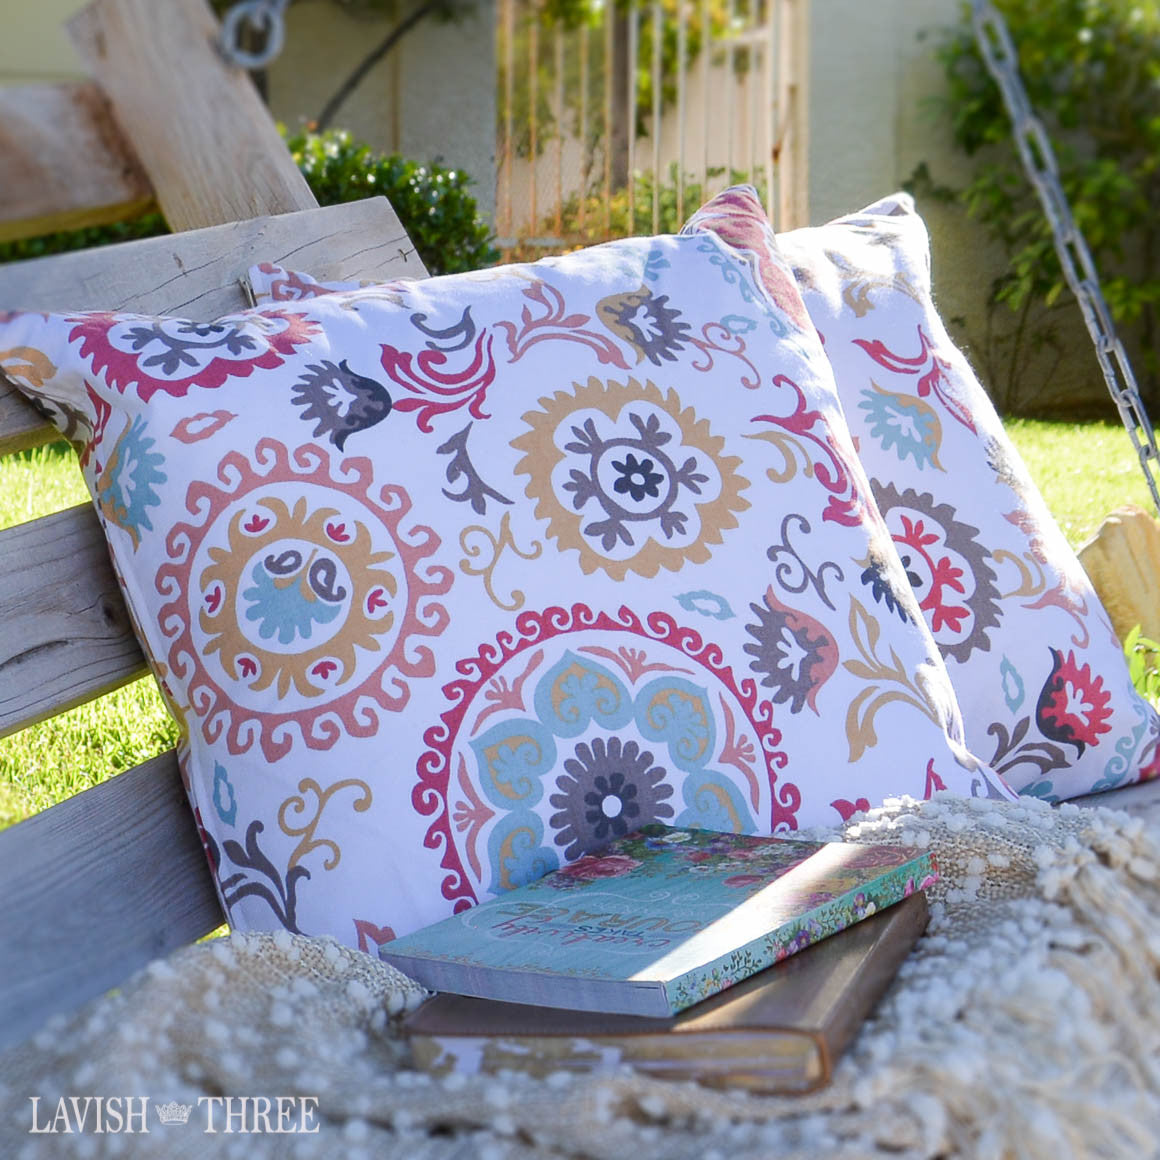 Country cottage floral and swirl boho style pattern throw  pillow set